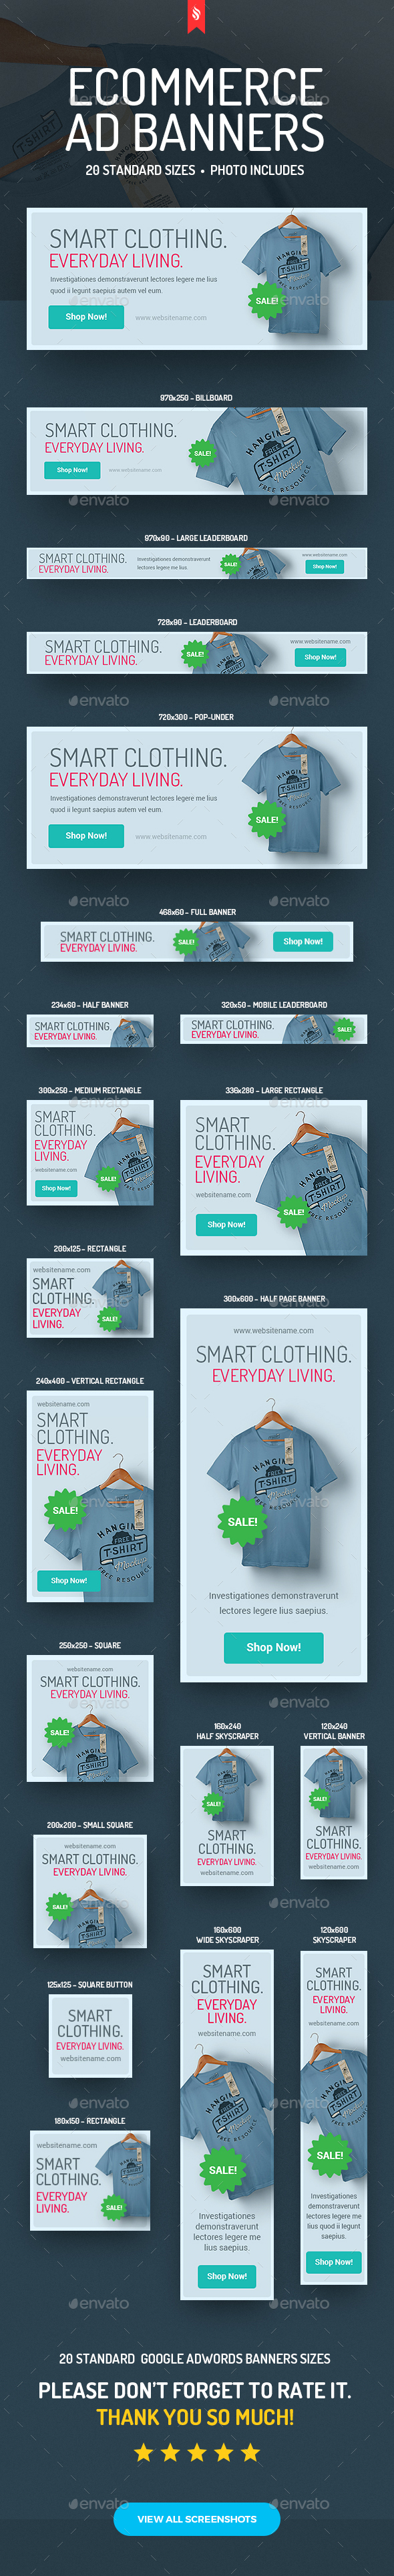 Online Advertising with Banner Ads  Shopify